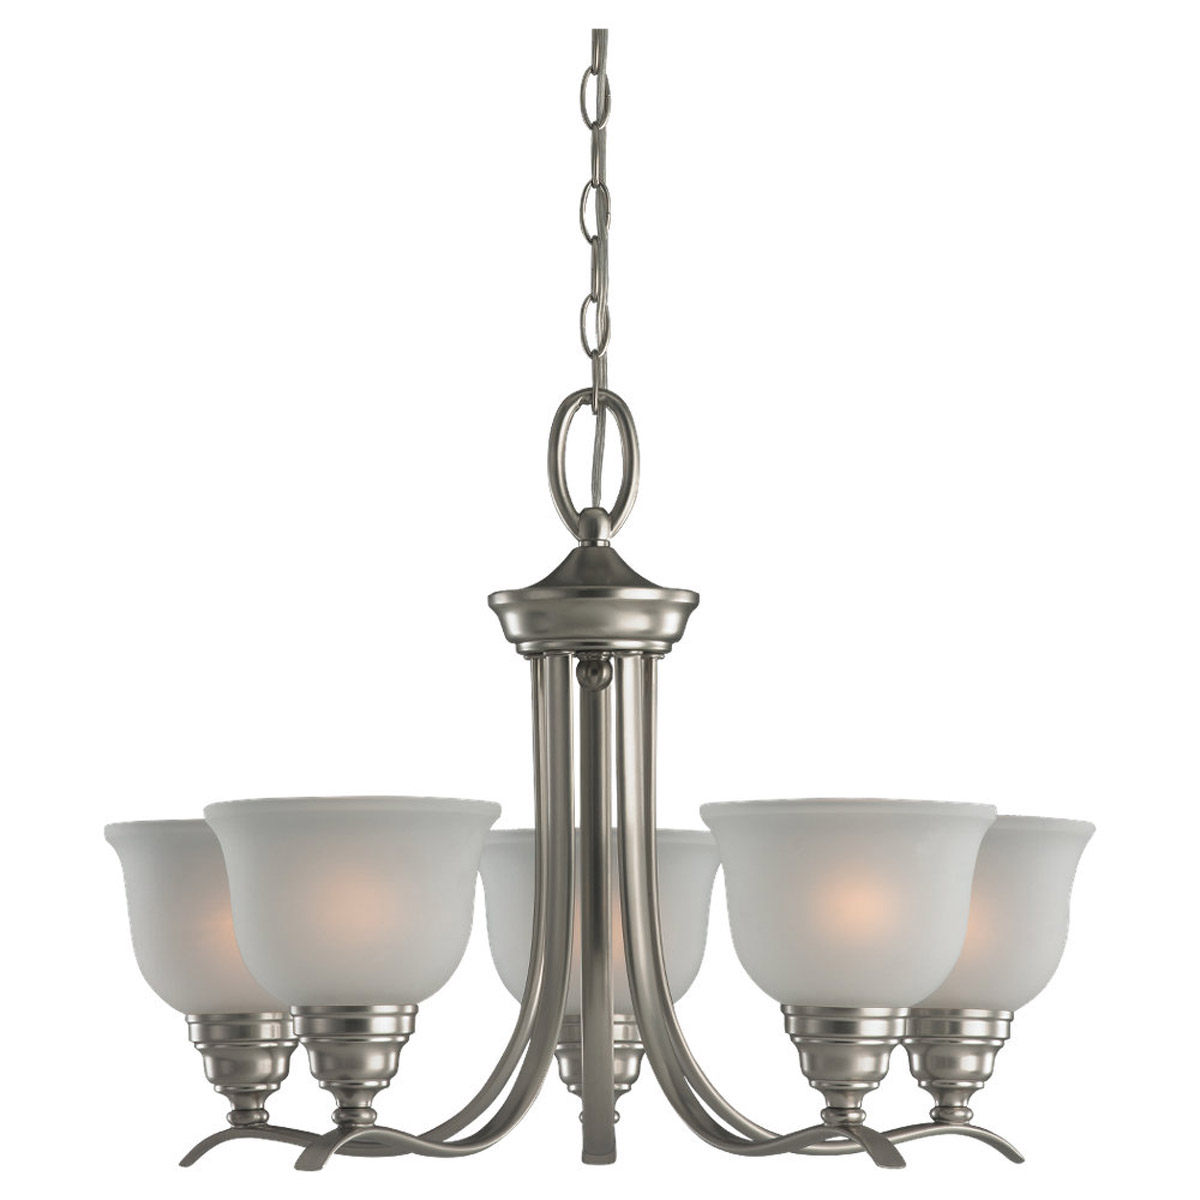 Sea Gull Lighting Wheaton 5 Light Chandelier in Brushed Nickel 31626BLE-962 photo